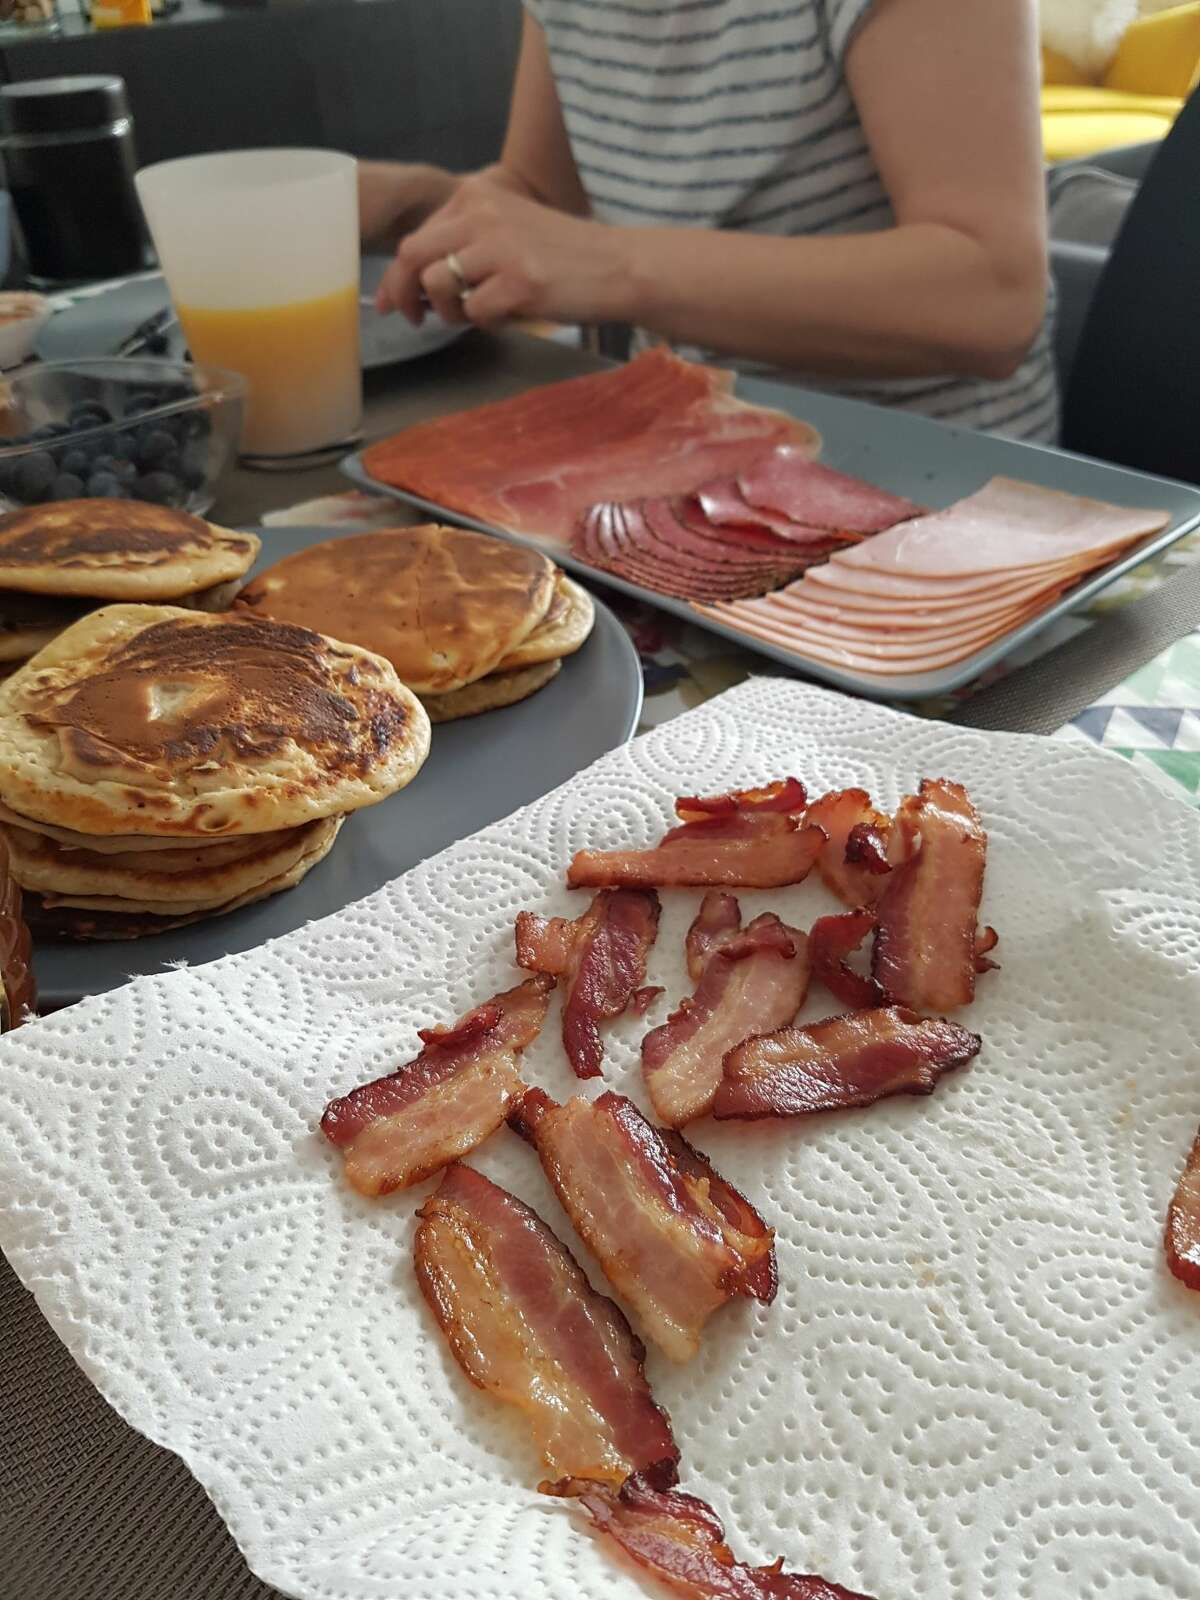 16 percent of Americans say they can't live without bacon in some form. Source: NationalToday.com